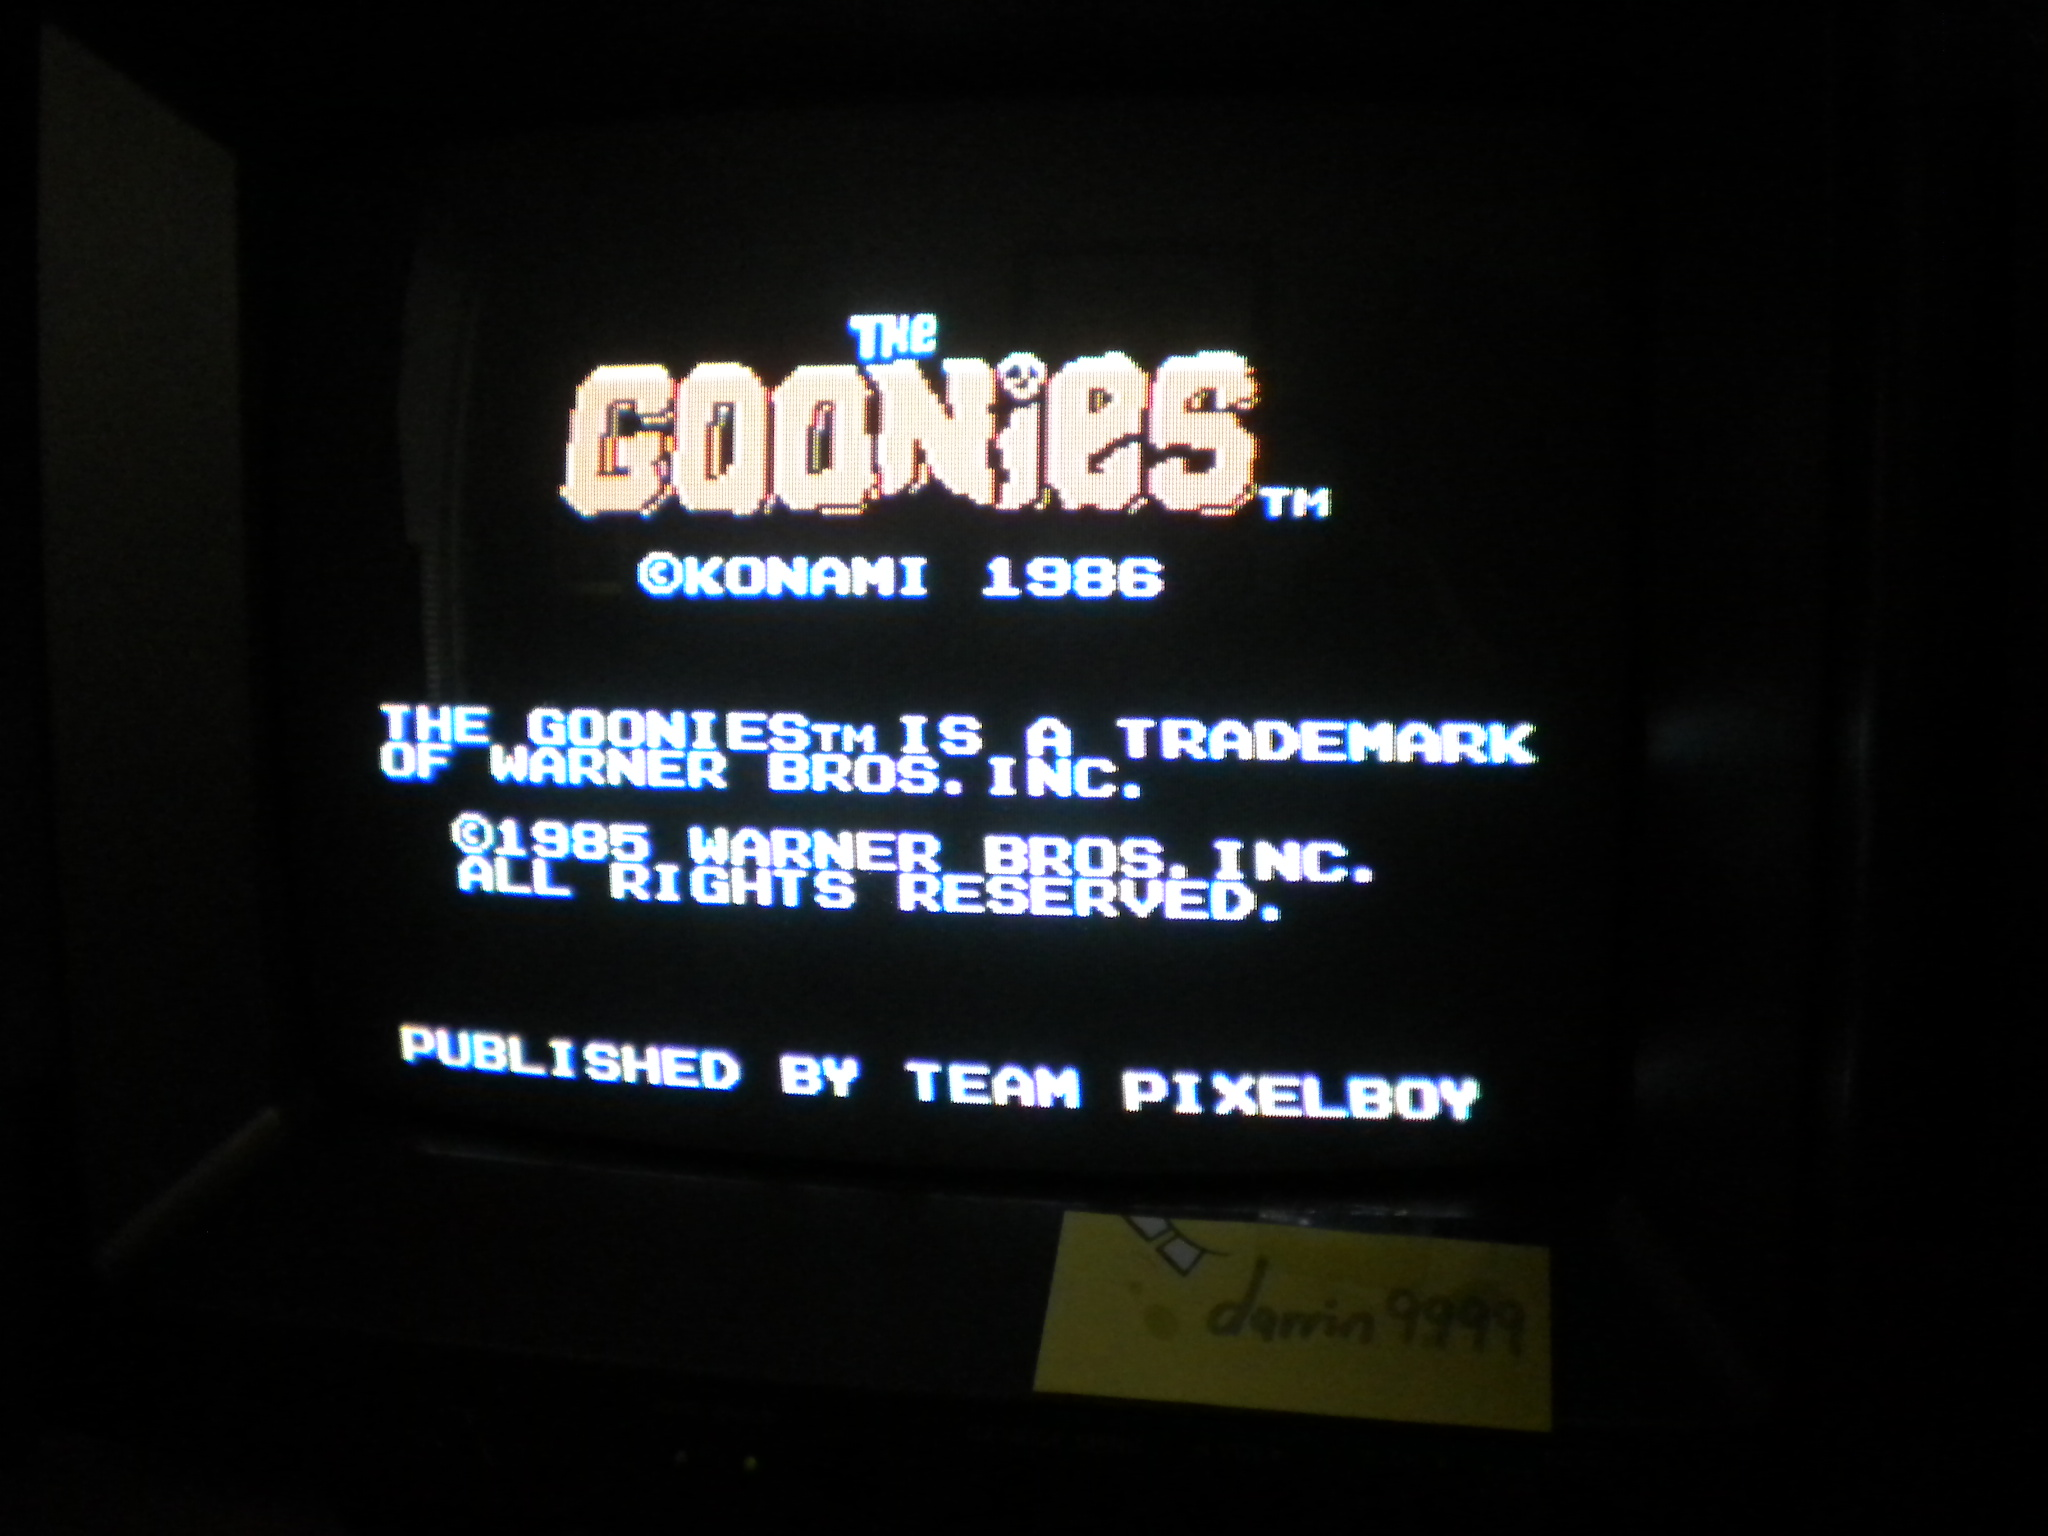 The Goonies 14,200 points